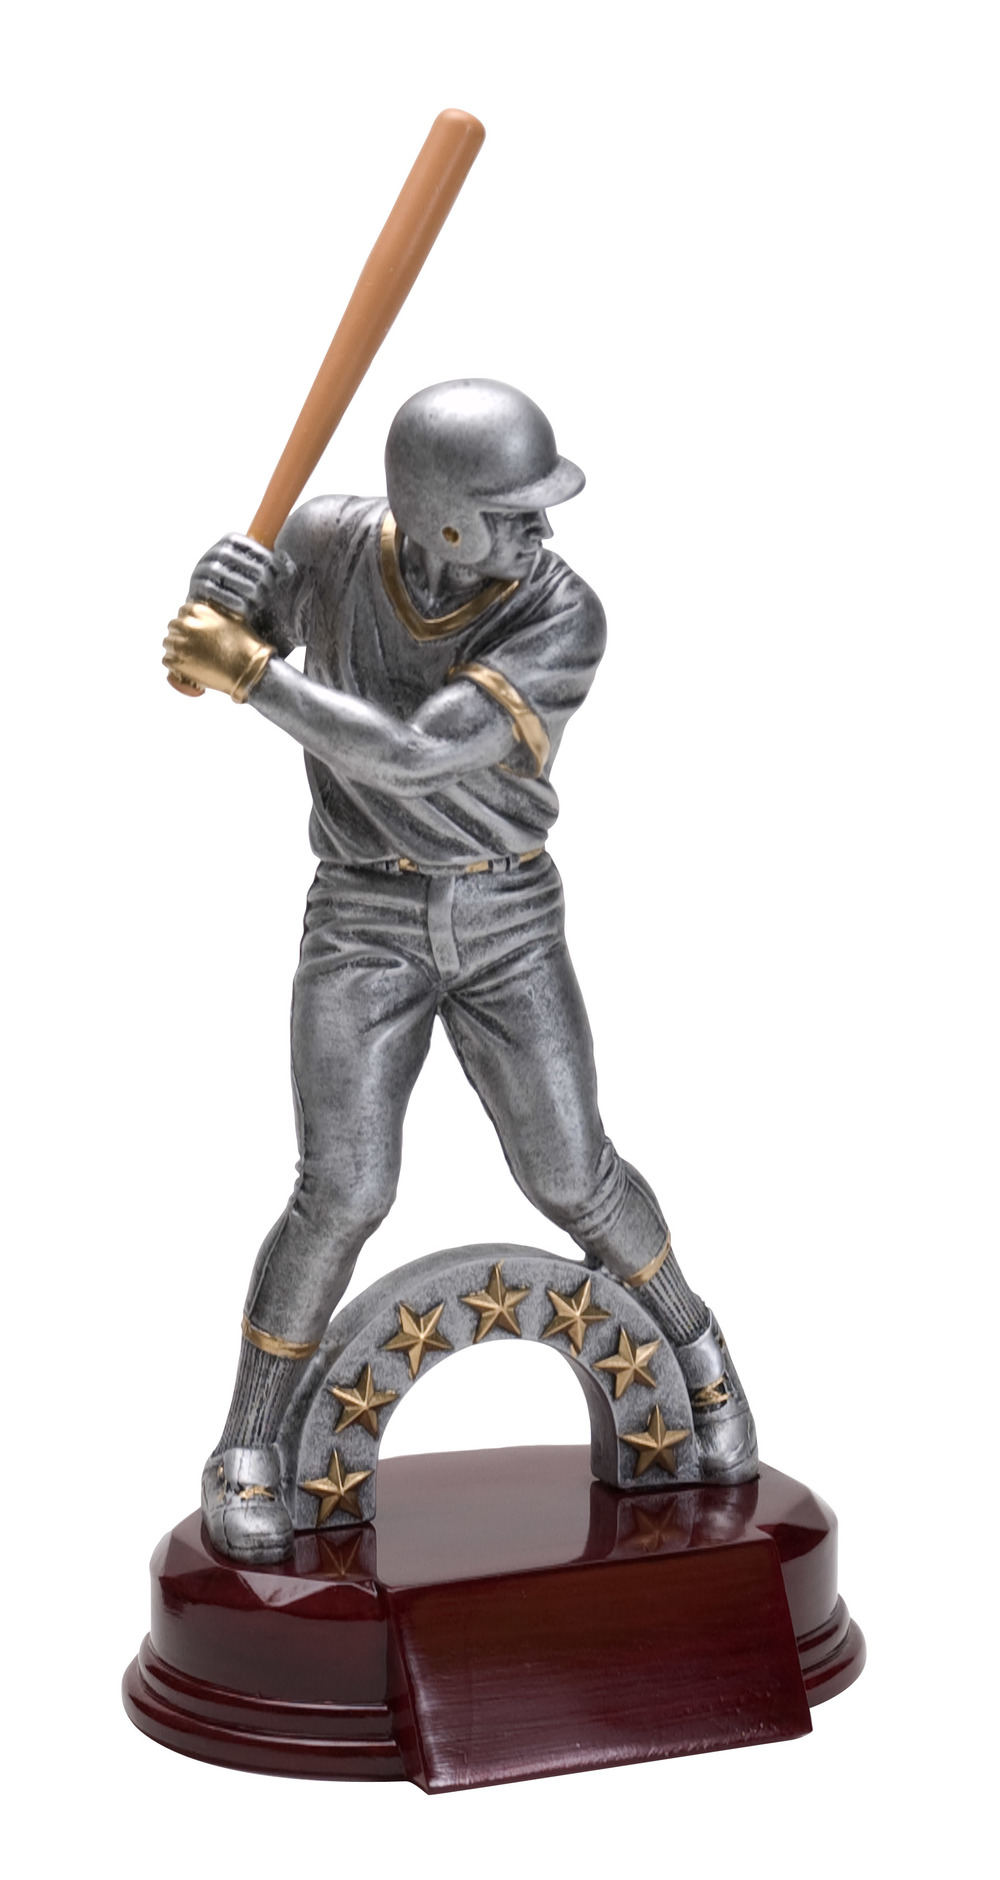 "Baseball, Male:   Large - RFC-1111 - 10.25""  Medium - RFC-911 - 9.75""  Small - RFC-711 - 7.25"""